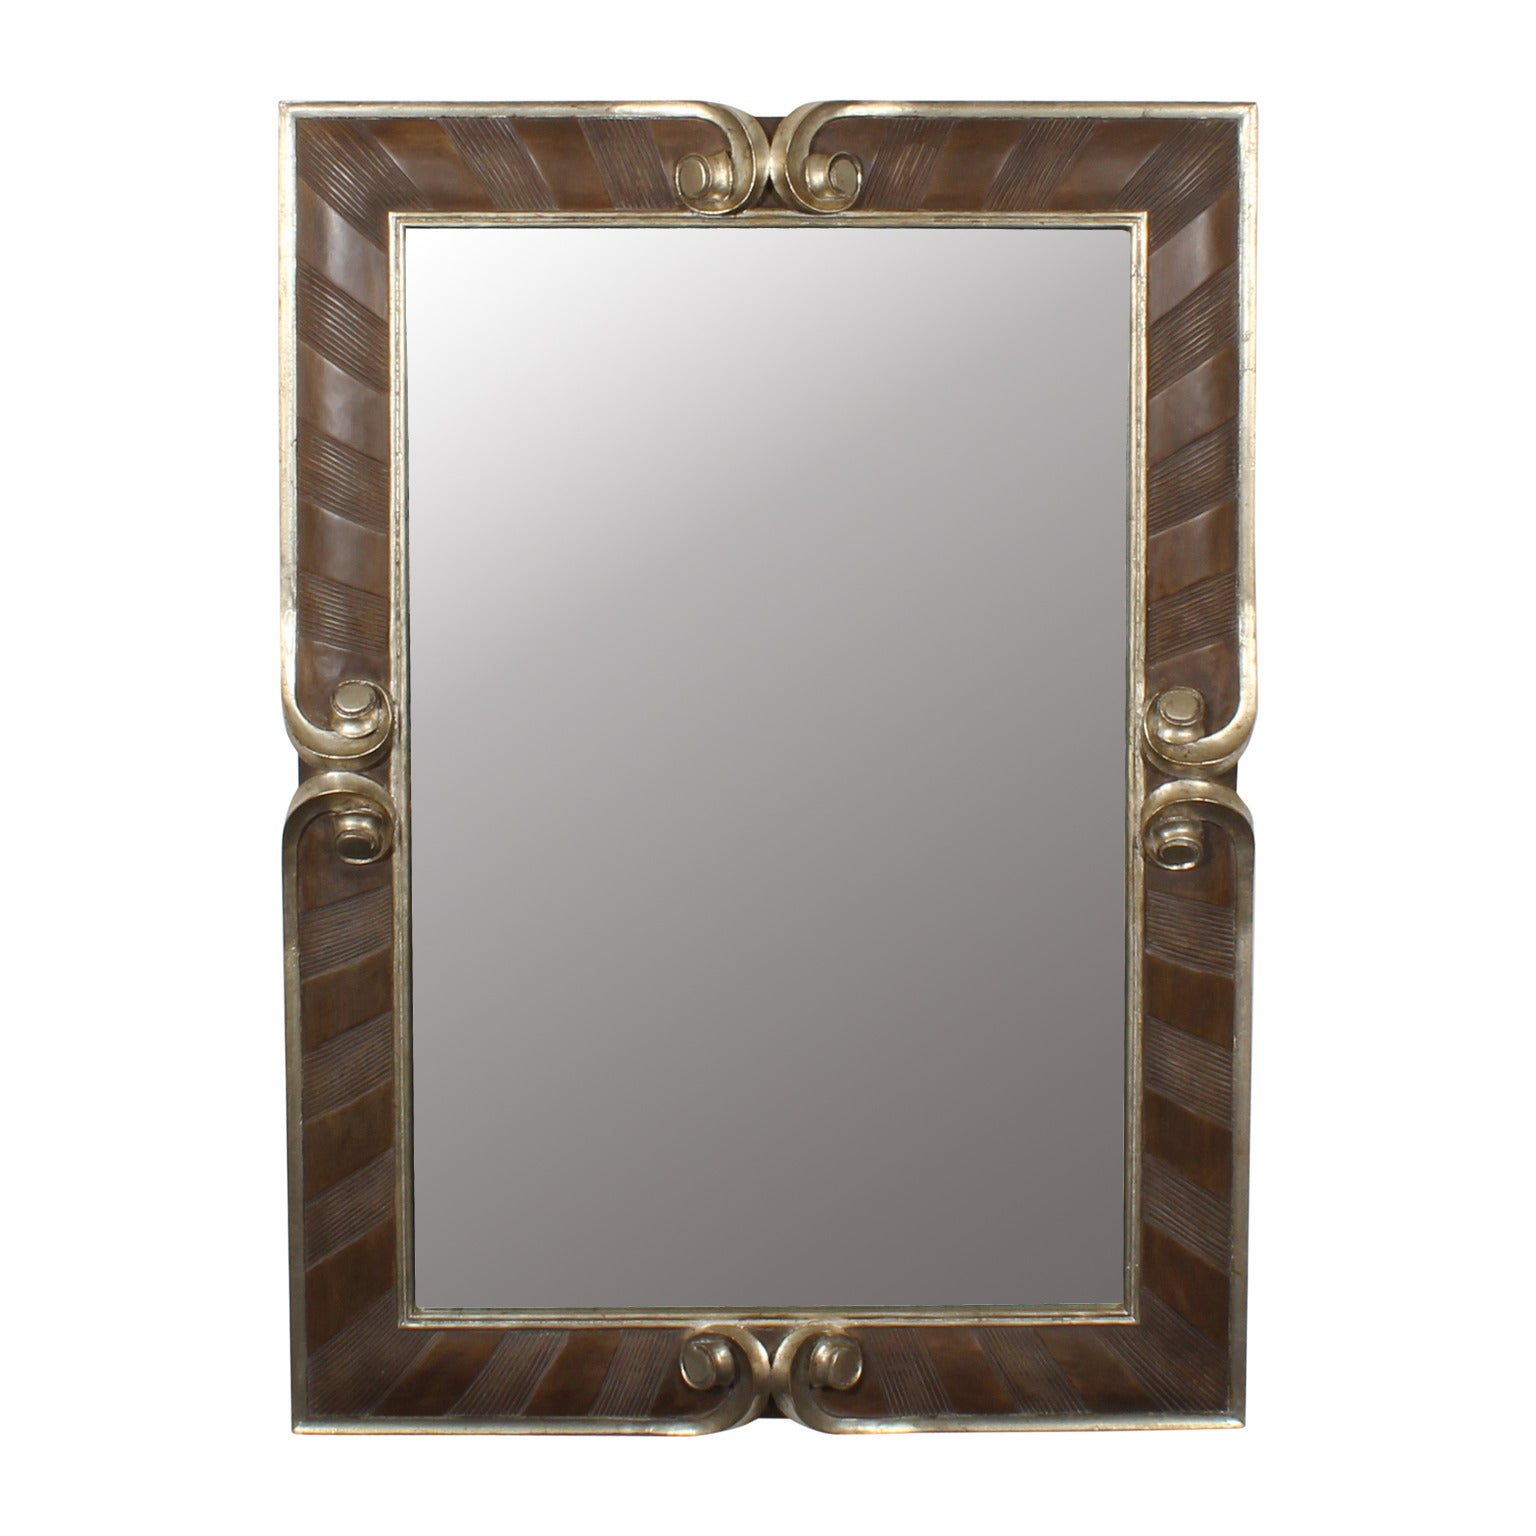 Carved and Silver Gilt Rectangular Mirror